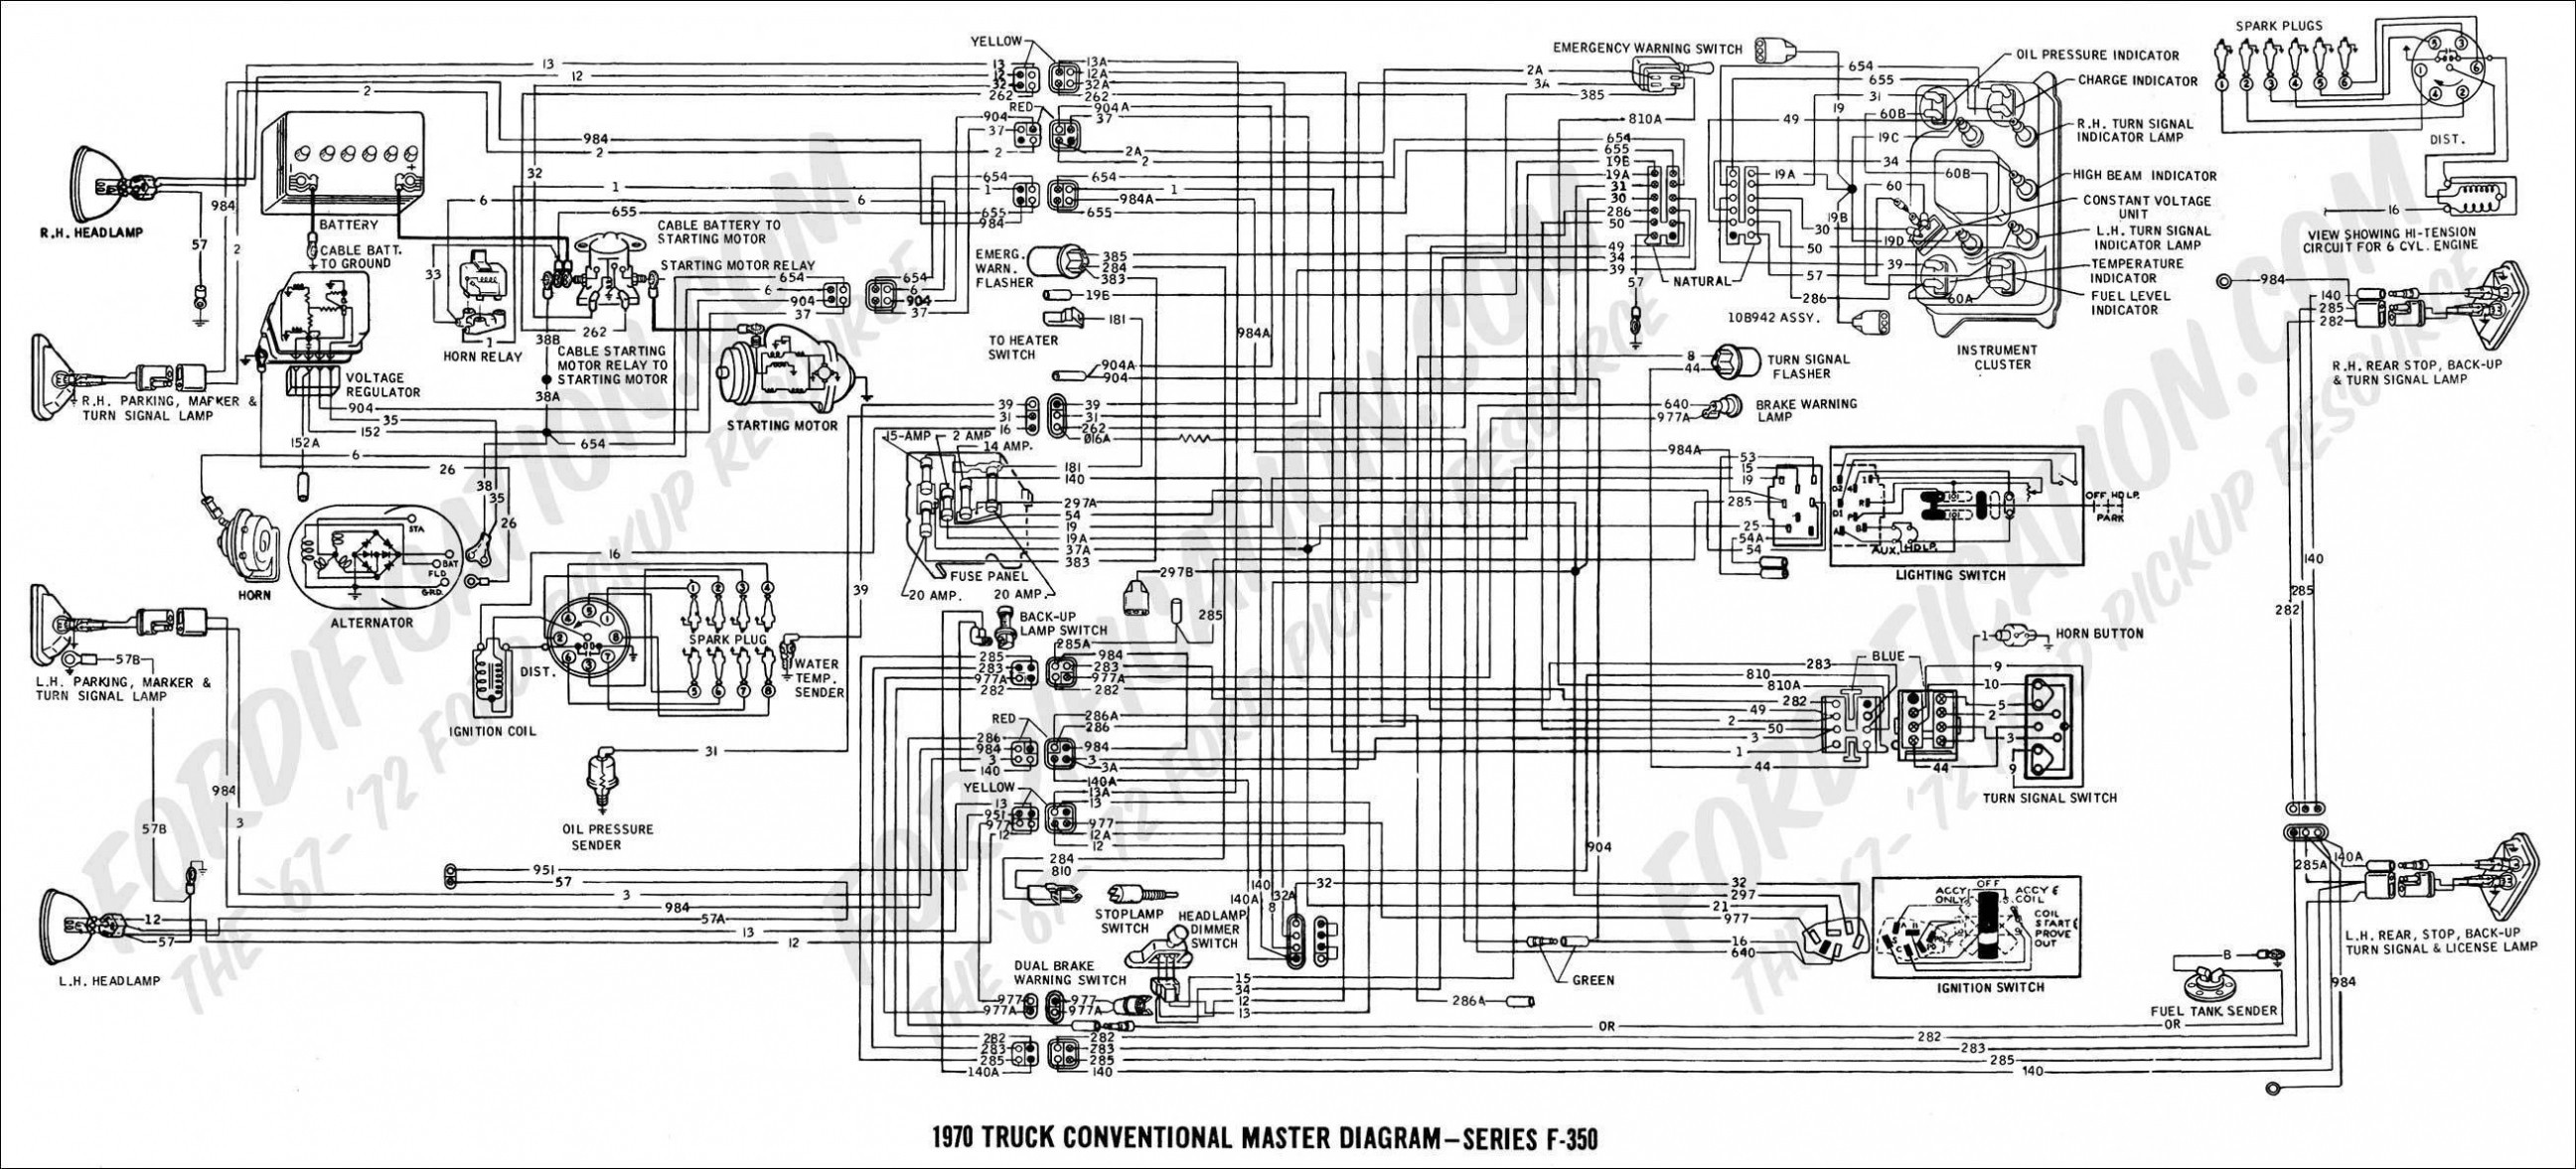 Enjoyable Wiring Diagram 1990 Ford 350 Sel Basic Electronics Wiring Diagram Wiring Cloud Genionhyedimohammedshrineorg